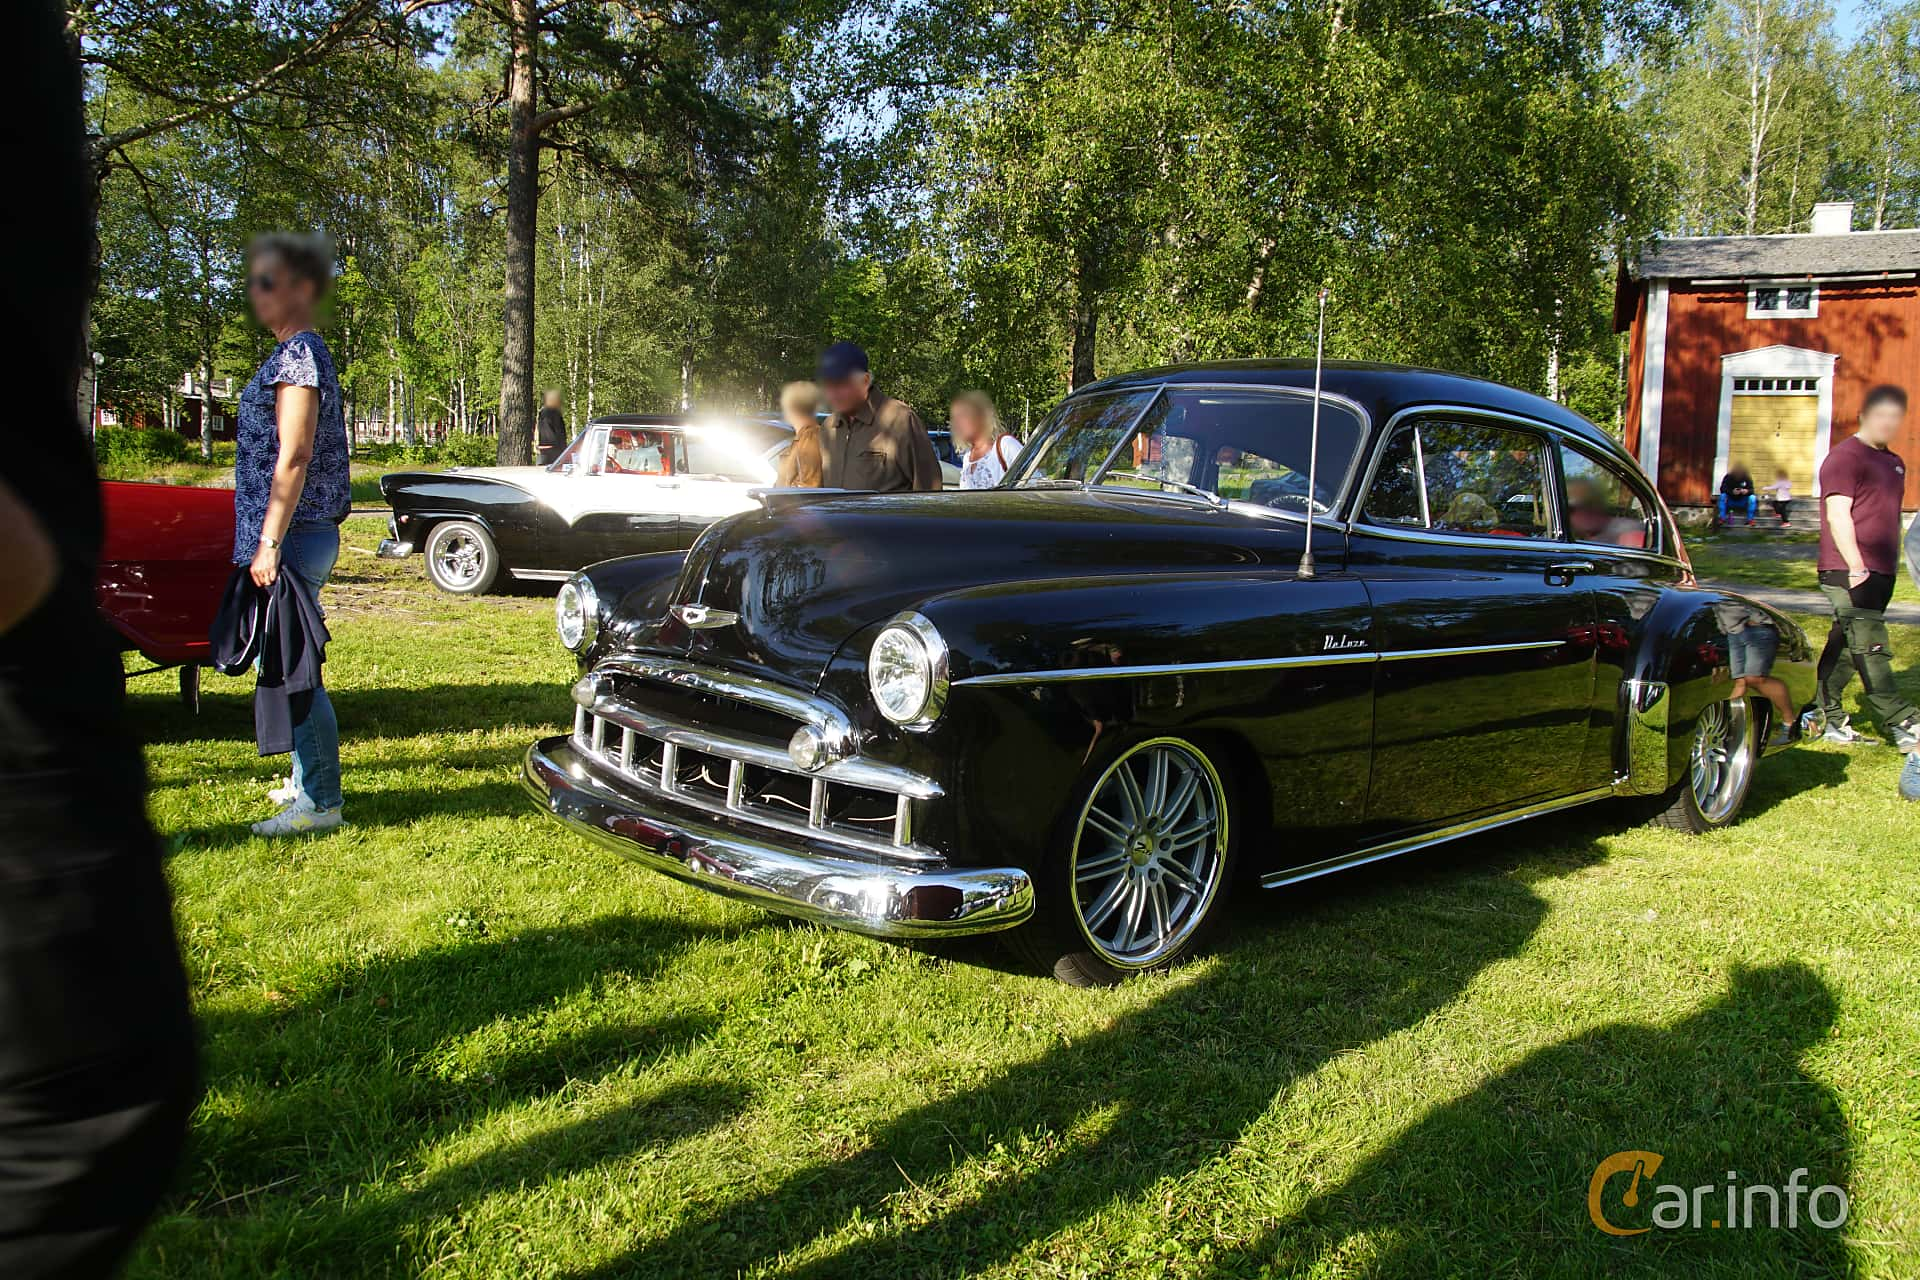 Chevrolet Fleetline Deluxe 2-door Sedan 3.5 Manual, 91hp, 1949 at Onsdagsträffar på Gammlia Umeå 2019 vecka 28